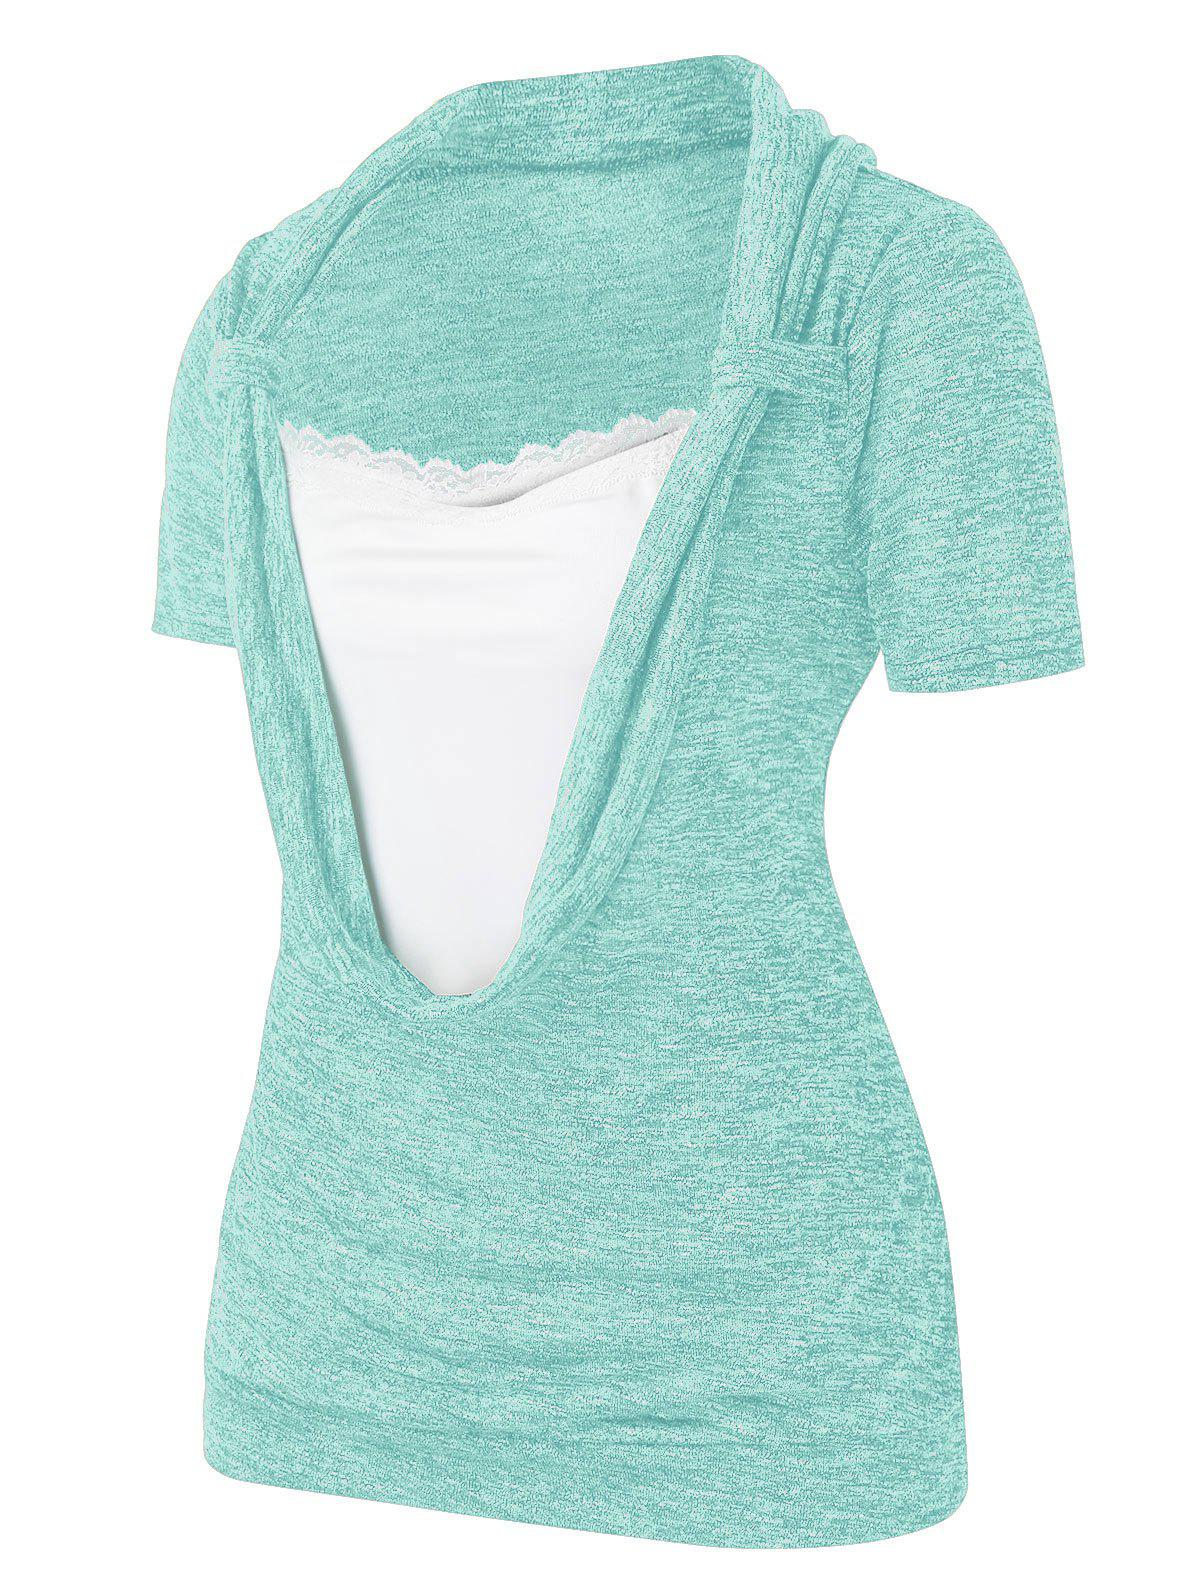 Plus Size Cowl Front Marled Lace Embellished T Shirt фото